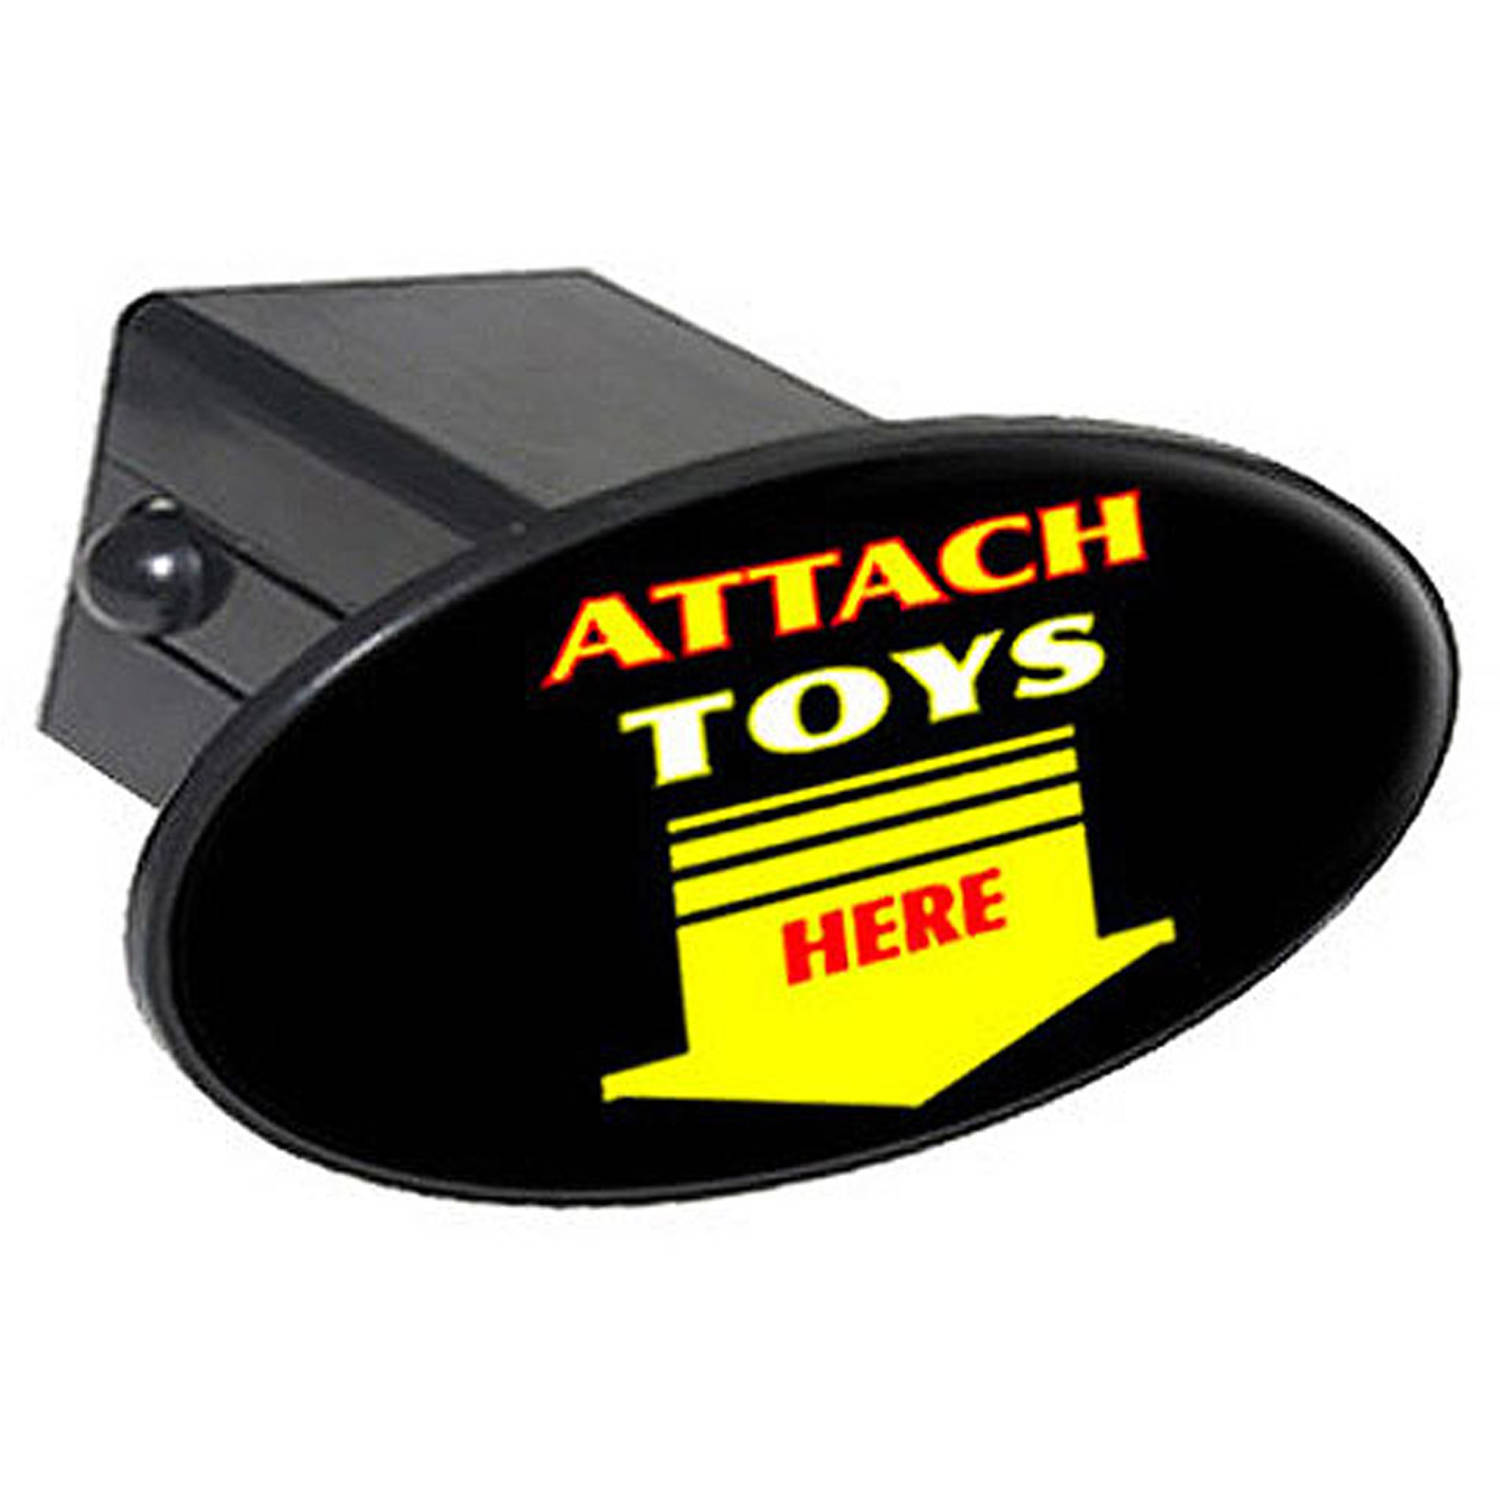 """Attach Toys Here, Arrow 2"""" Oval Tow Trailer Hitch Cover Plug Insert"""